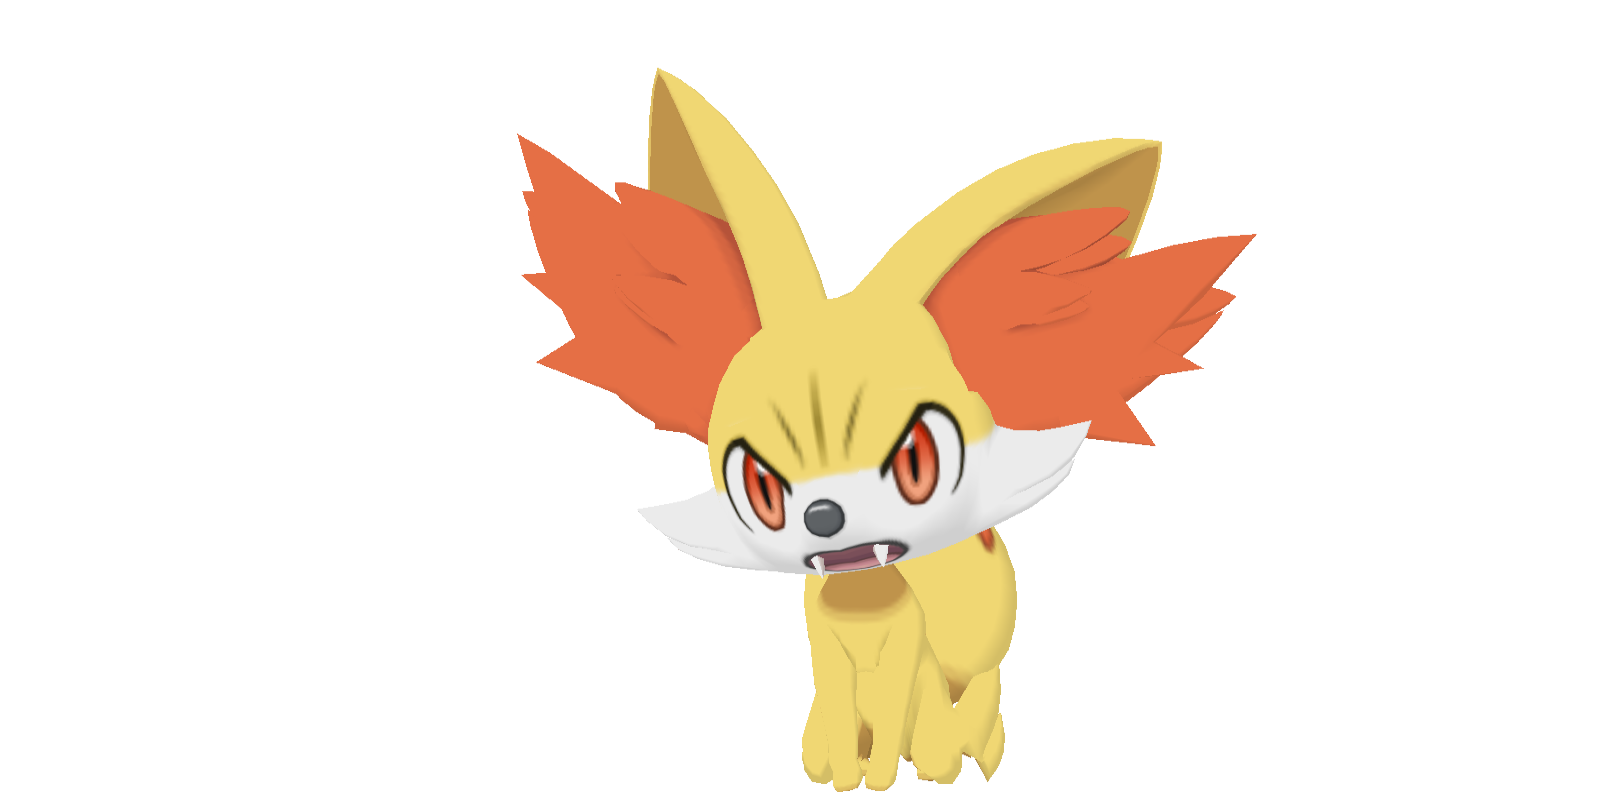 What does fennekin say model download by kaahgome on for Deviantart vrchat avatars